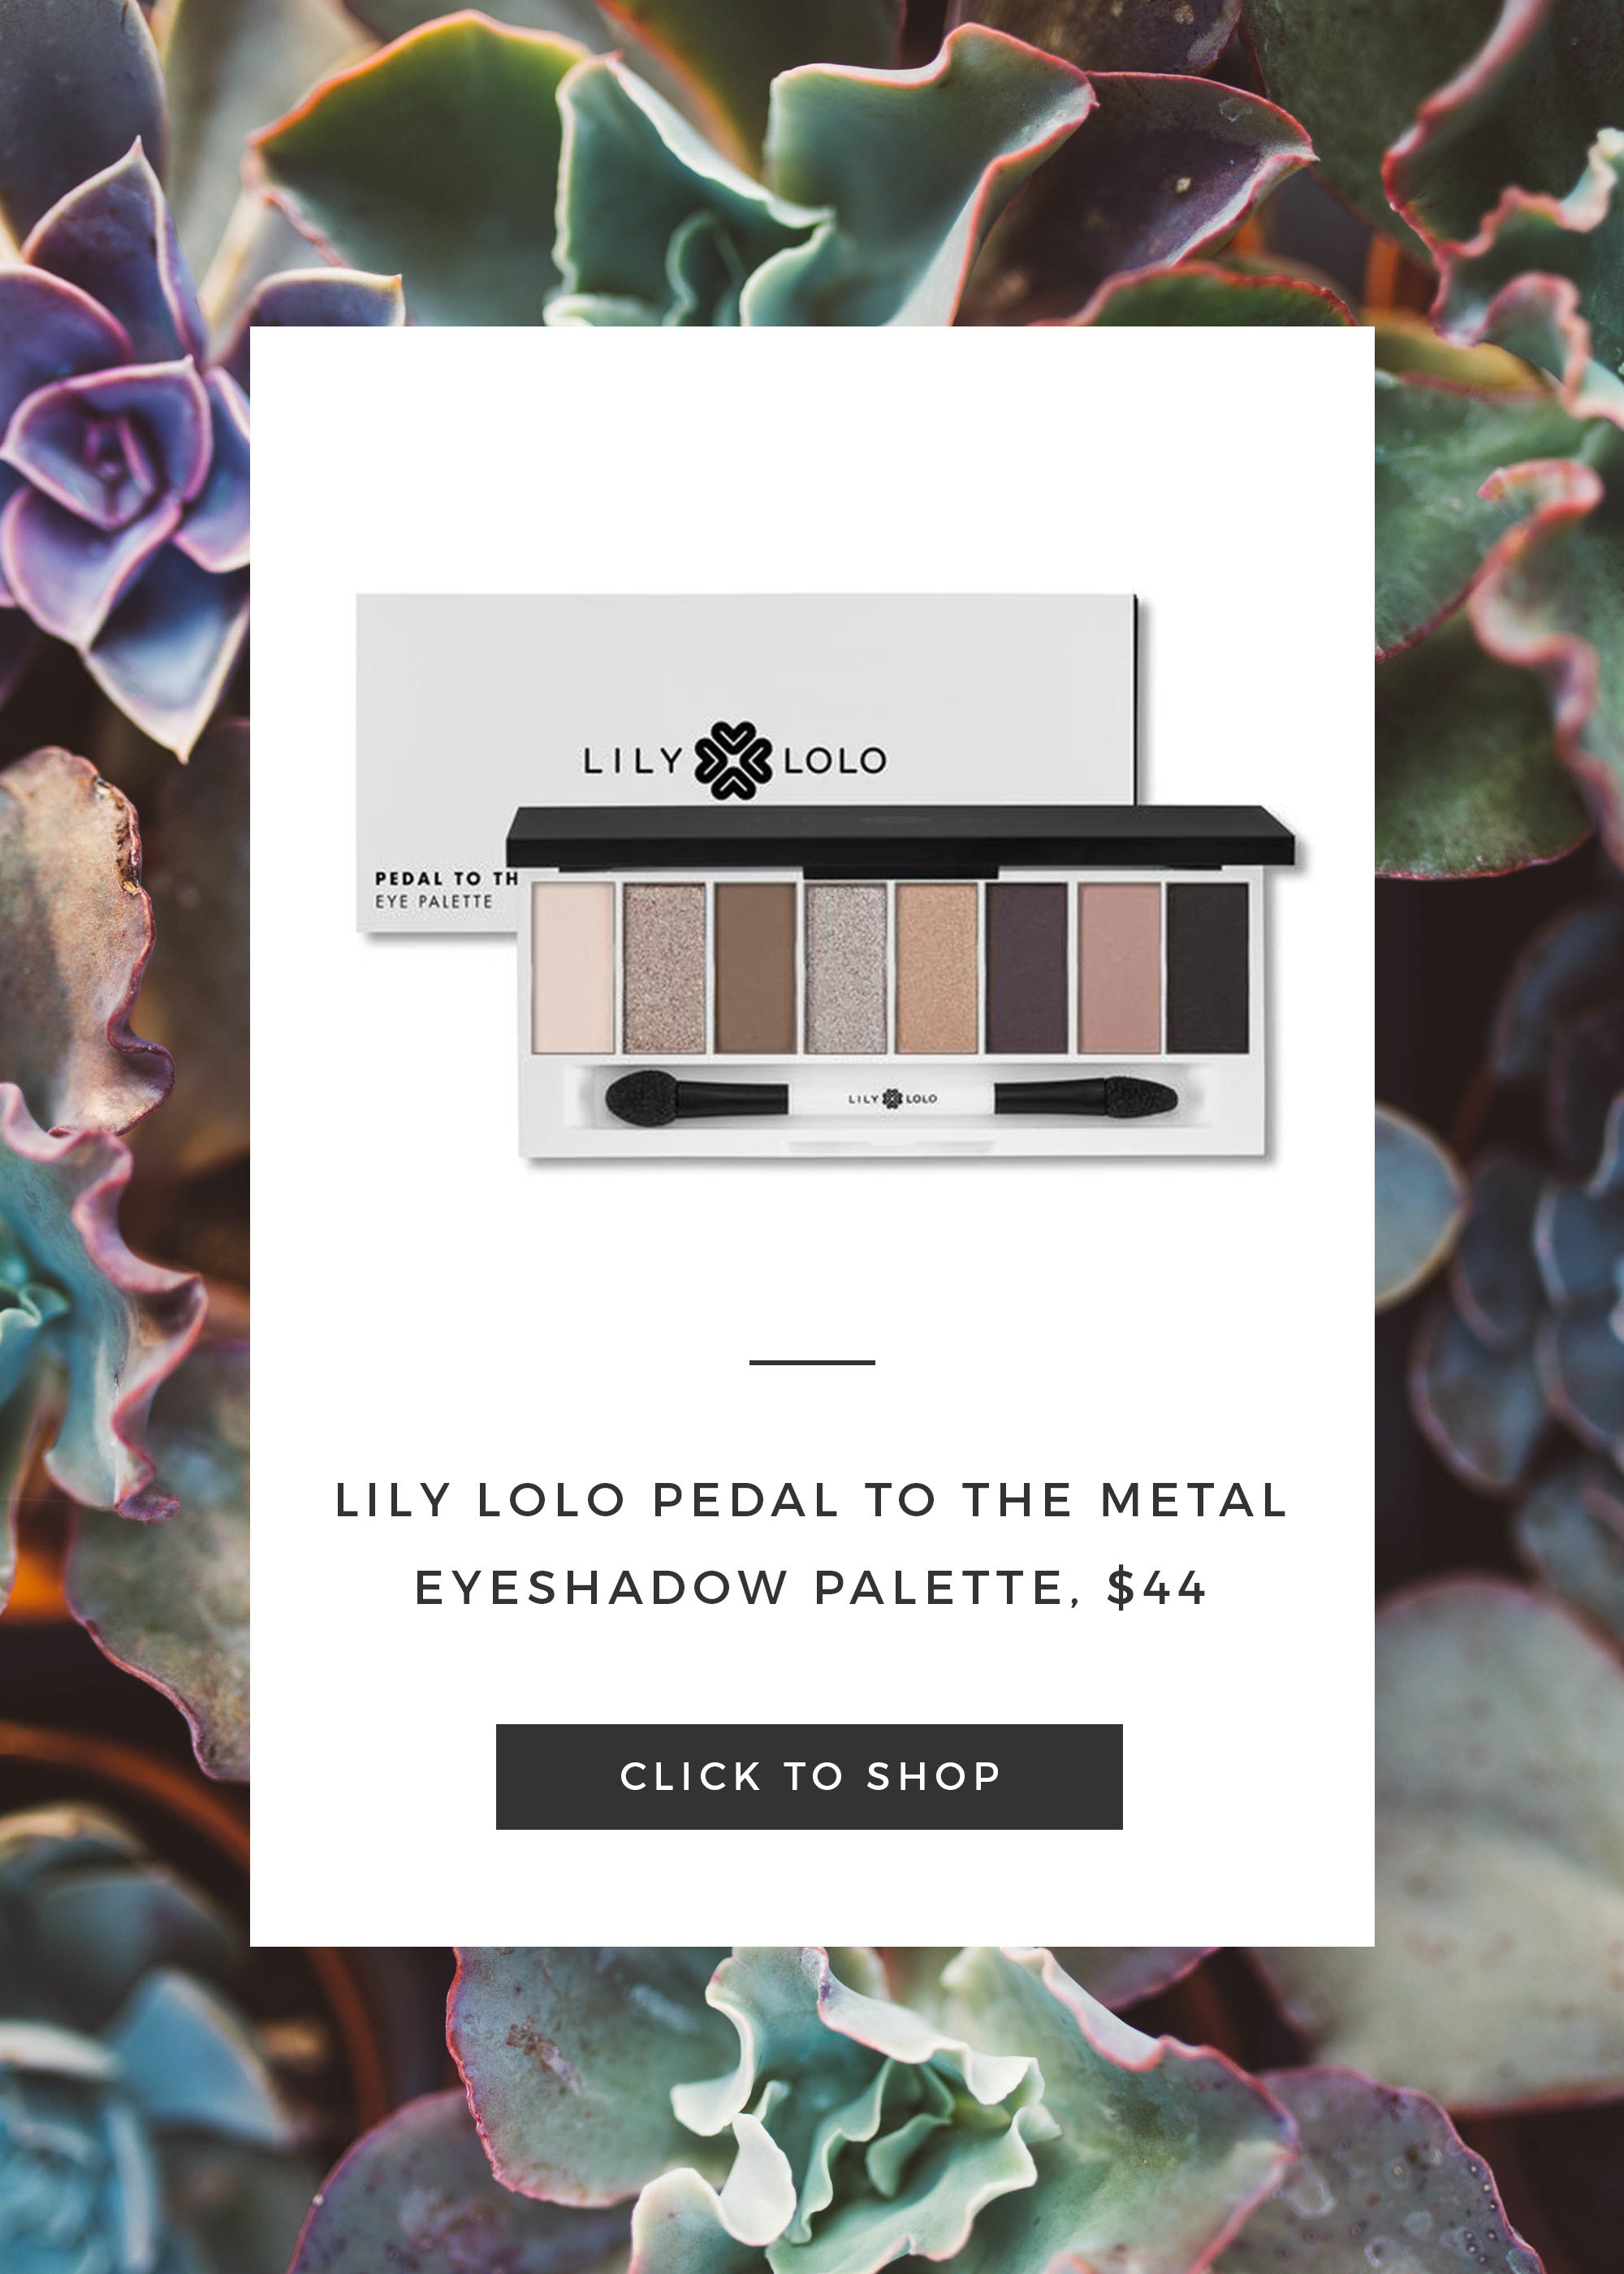 lily-lolo-pedal-to-the-metal-eyeshadow-palette